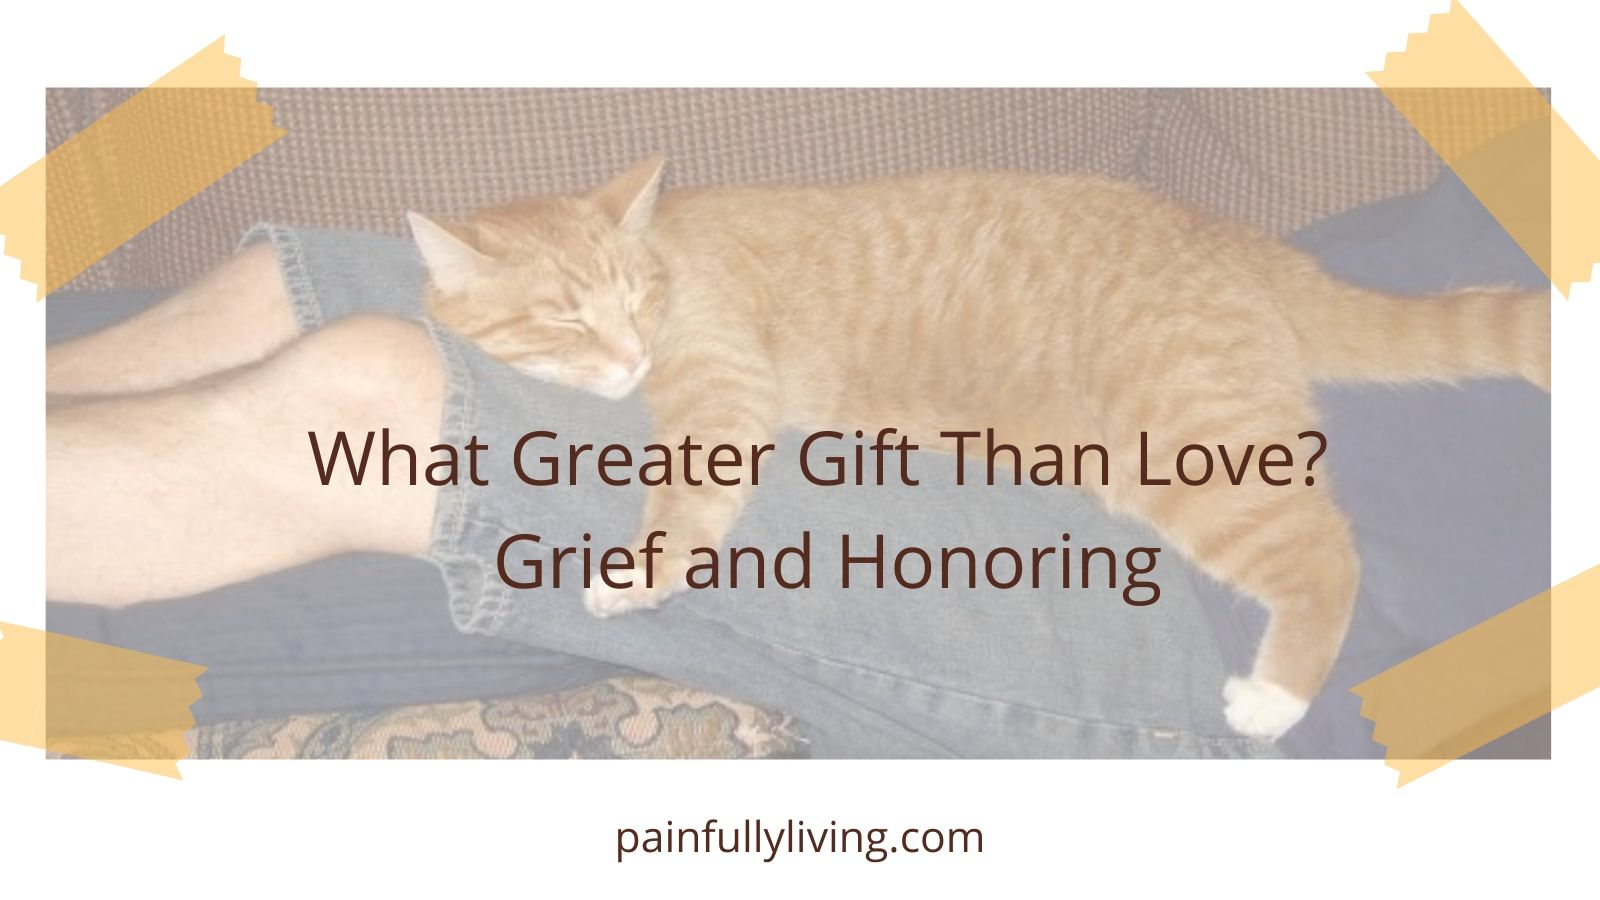 What Greater Gift Than Love? Grief and Honoring